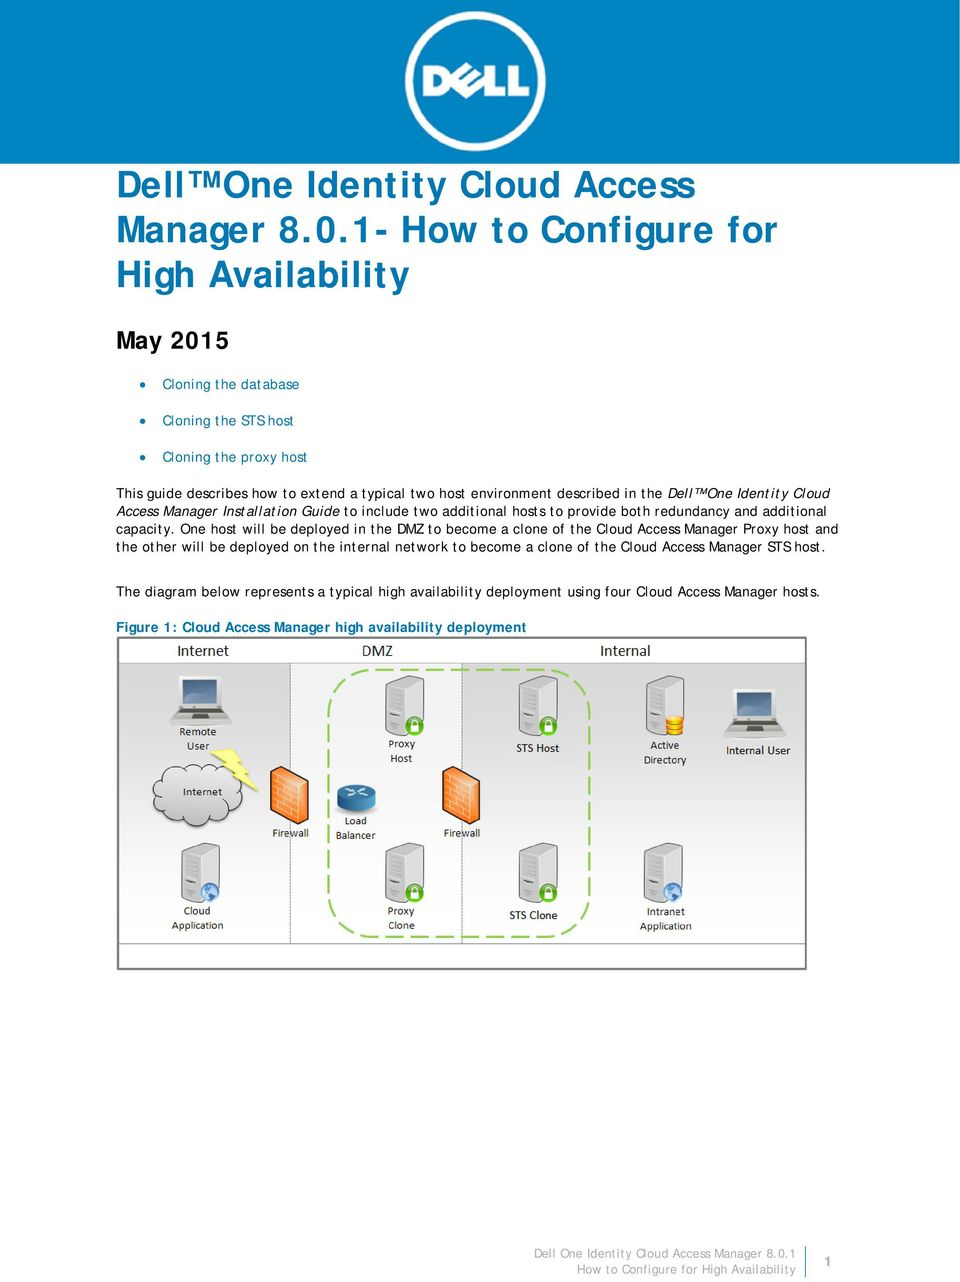 described in the Dell One Identity Cloud Access Manager Installation Guide to include two additional hosts to provide both redundancy and additional capacity.